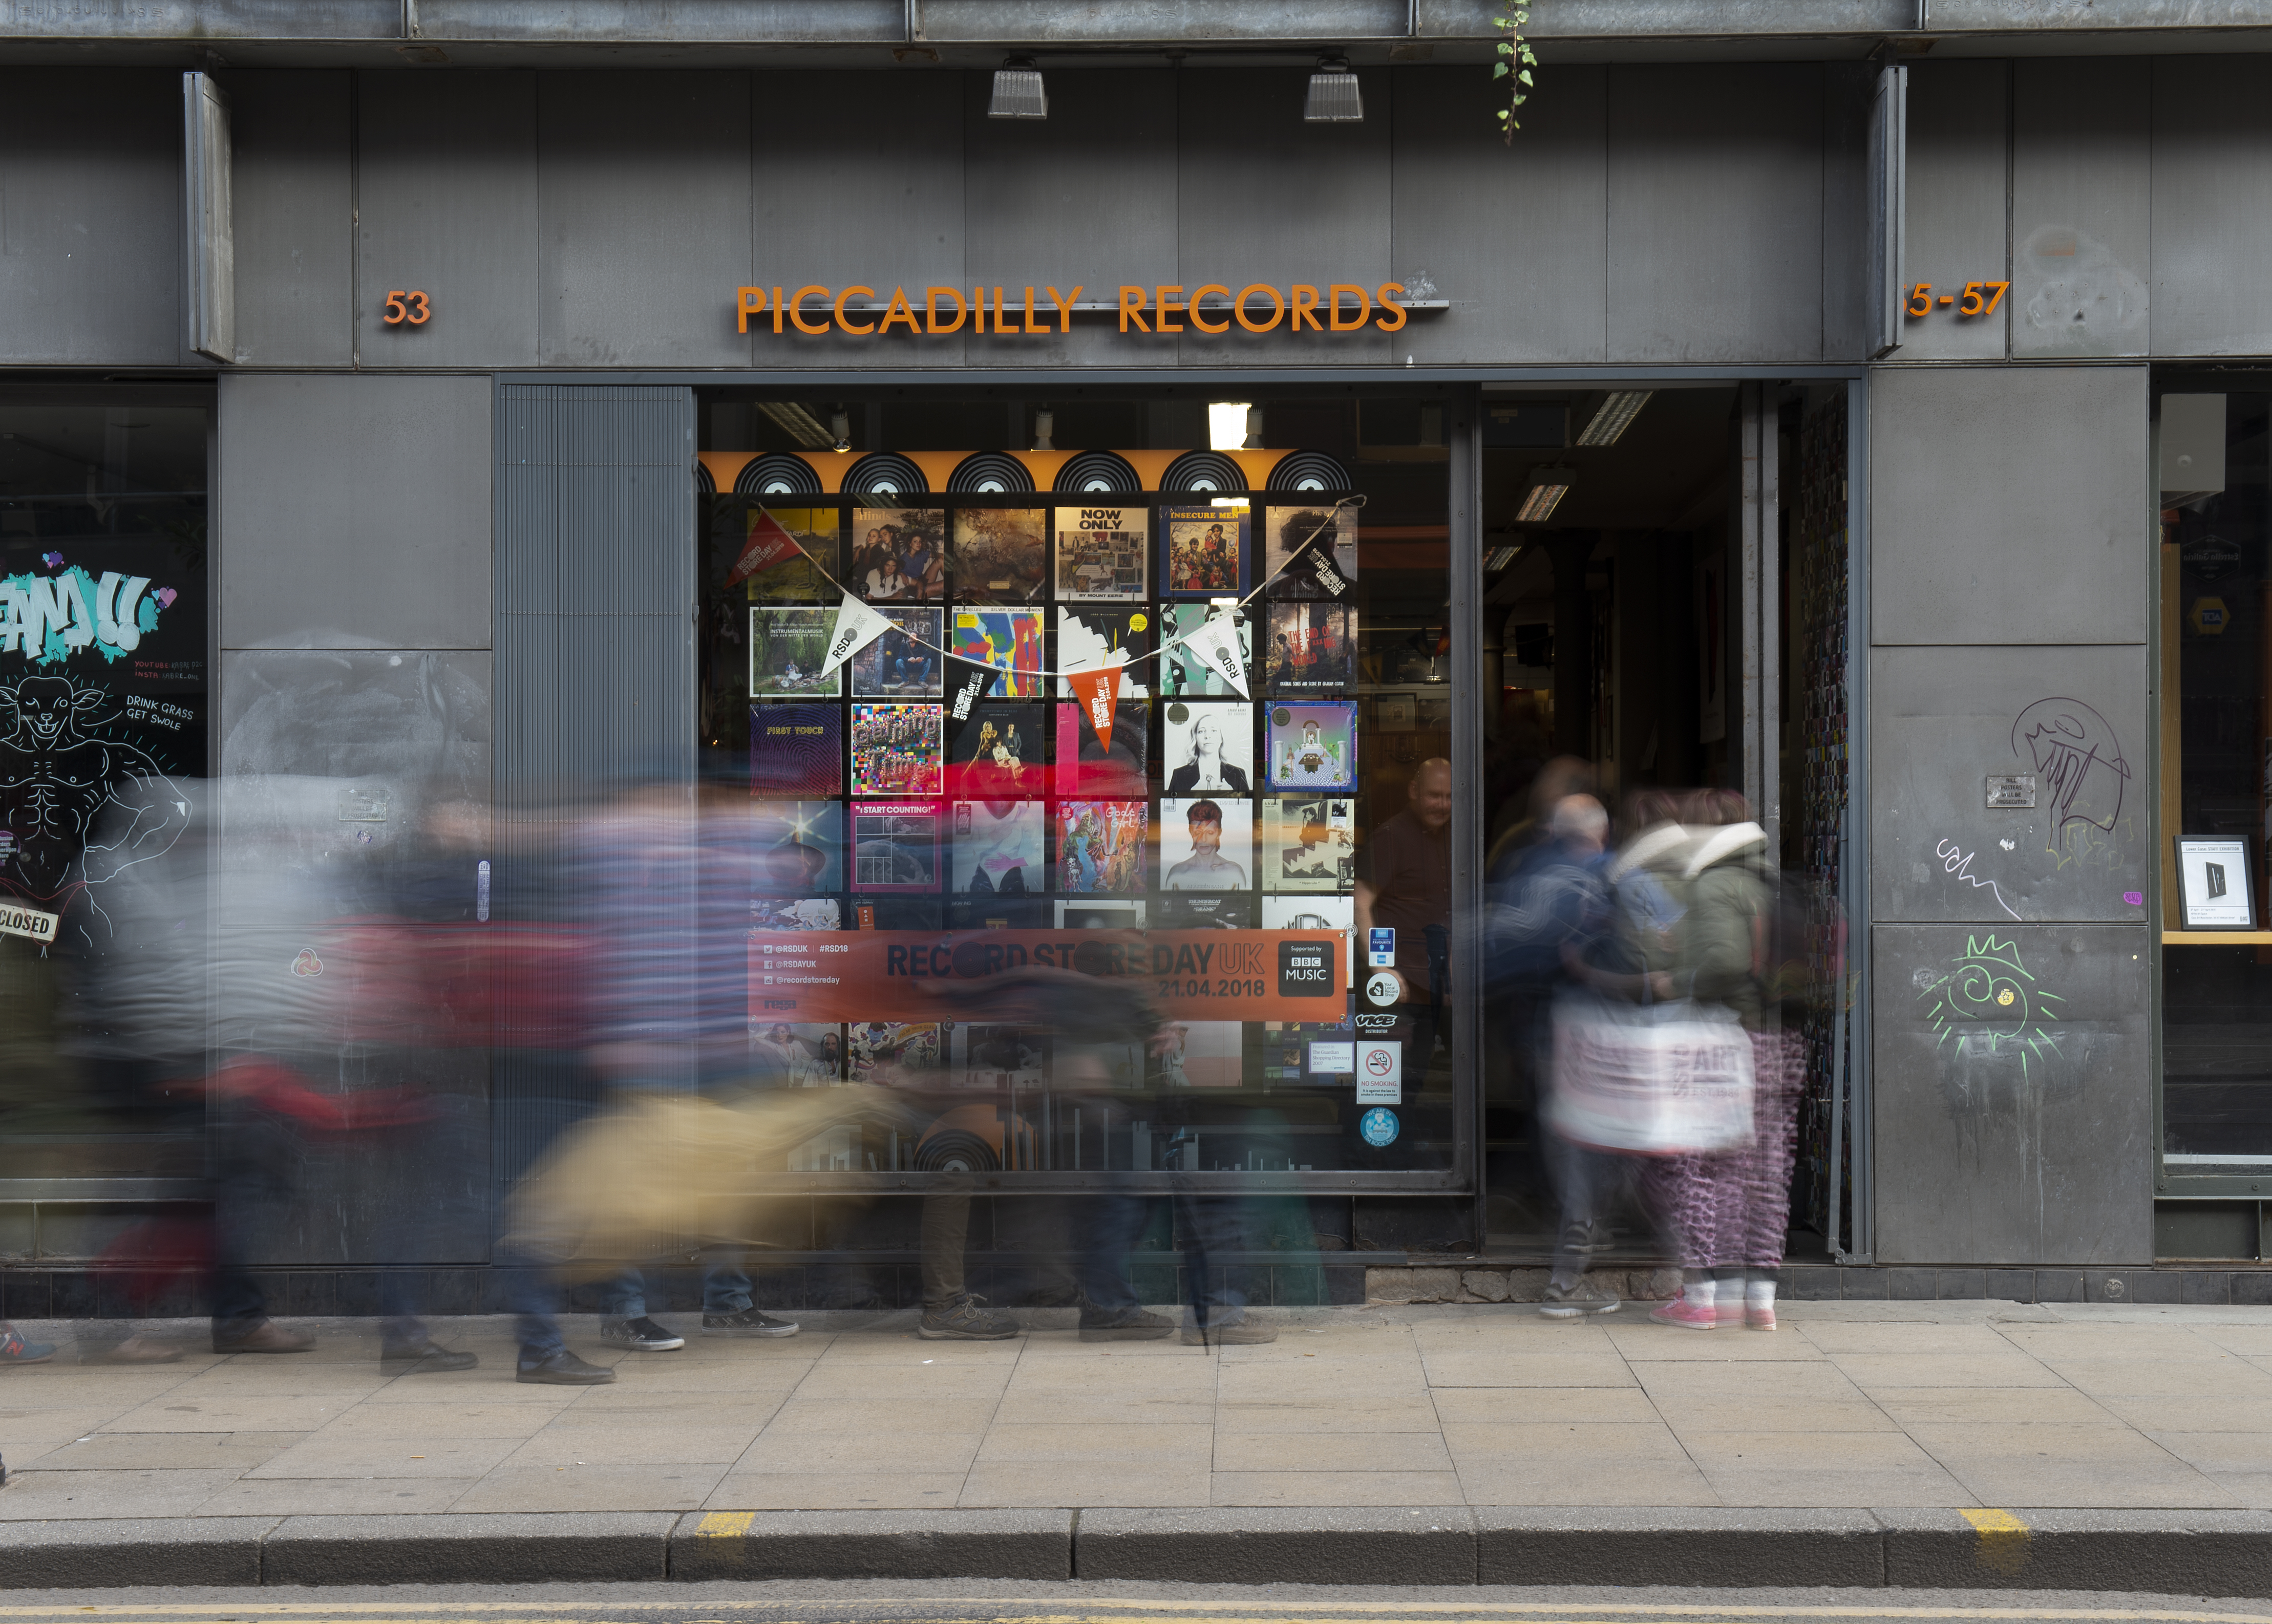 Queues outside Piccadilly Records for Record Store Day